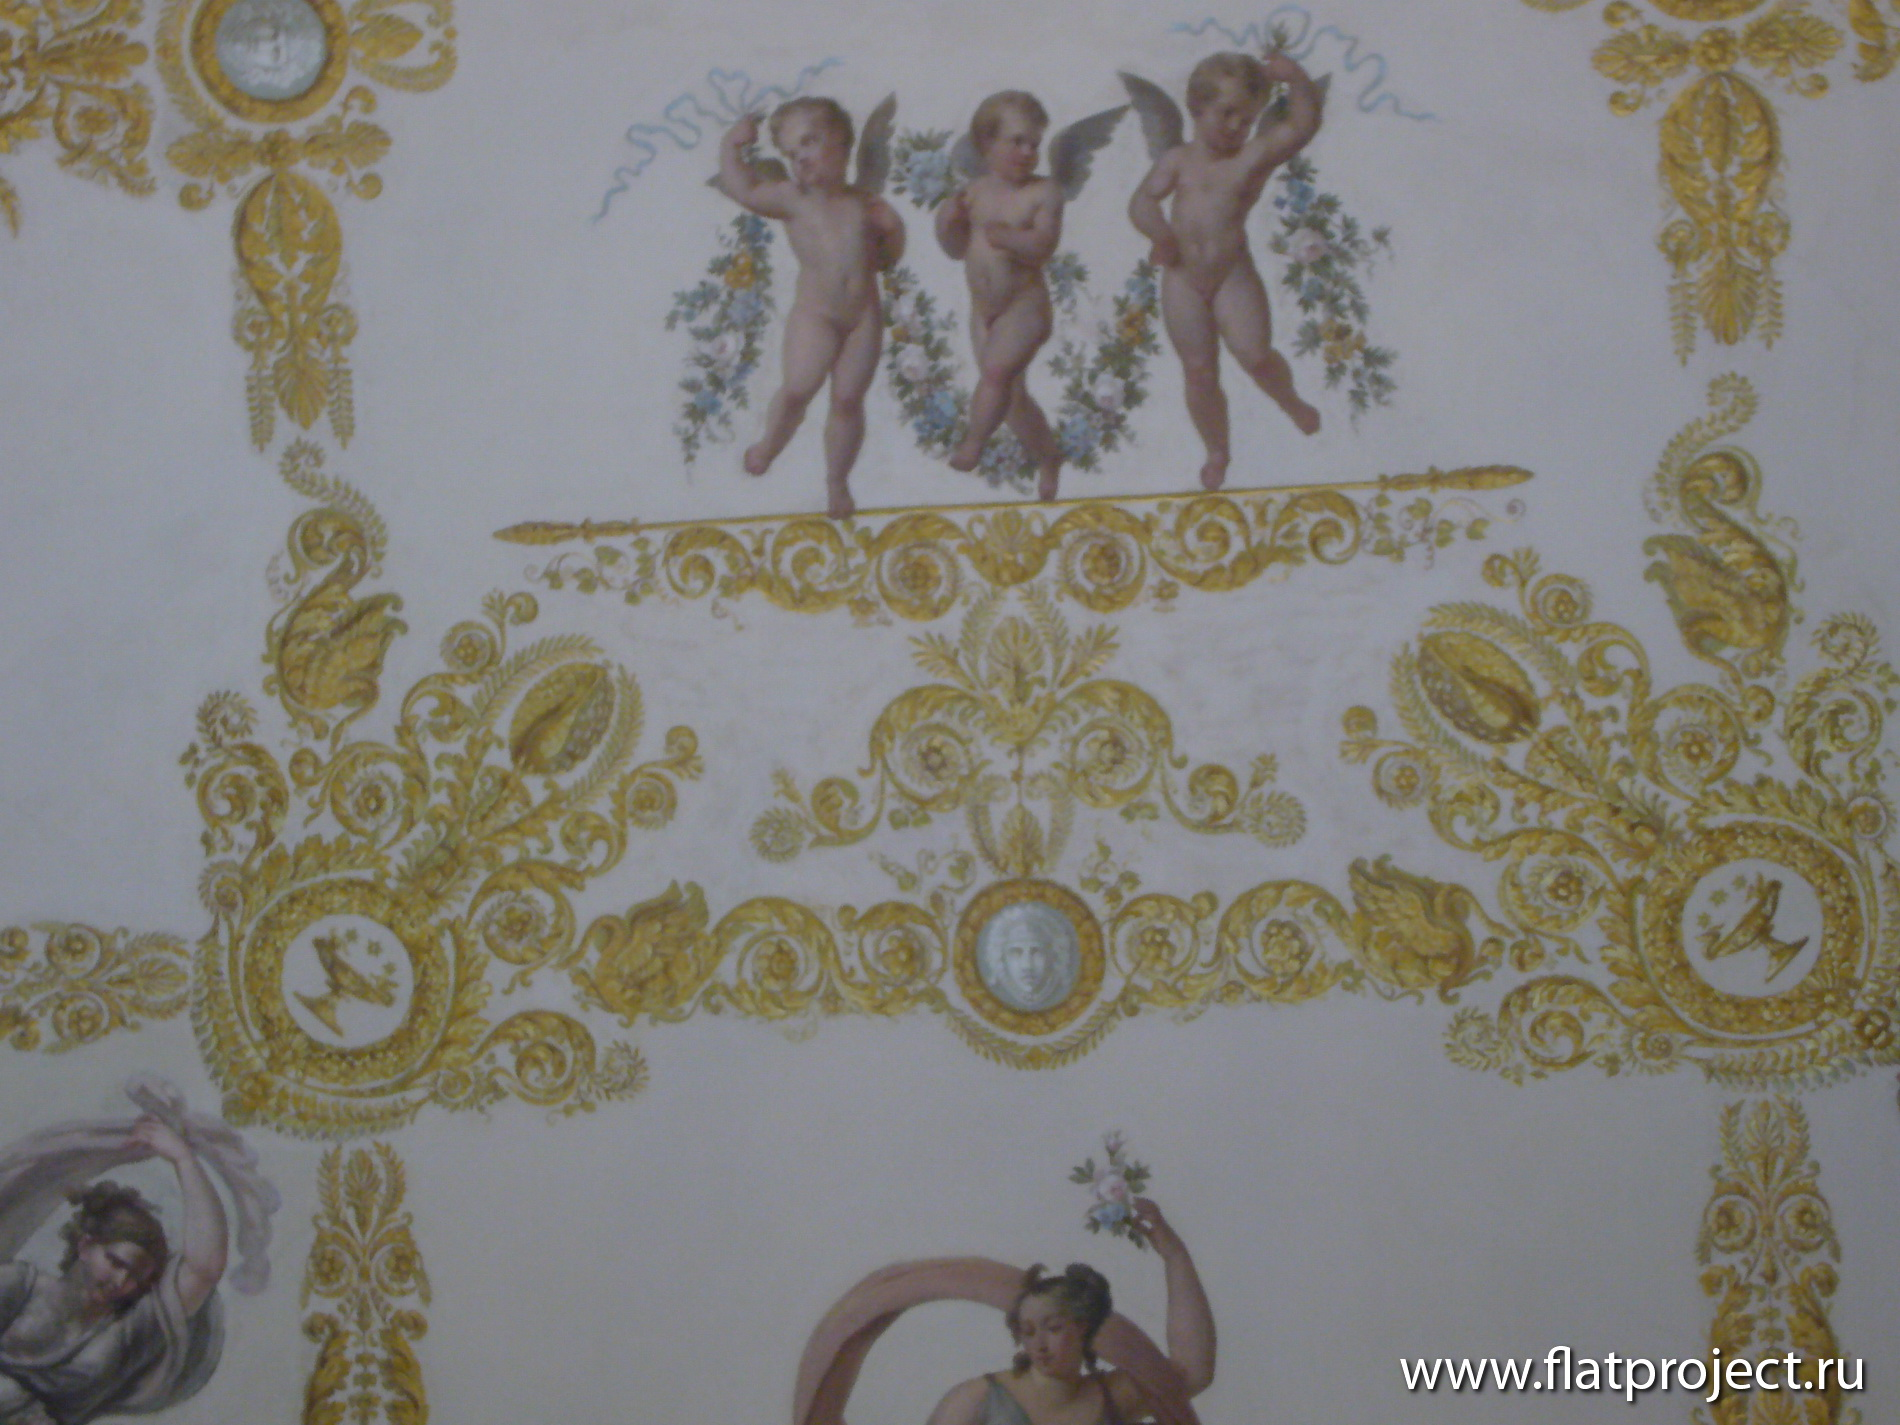 The State Russian museum interiors – photo 13